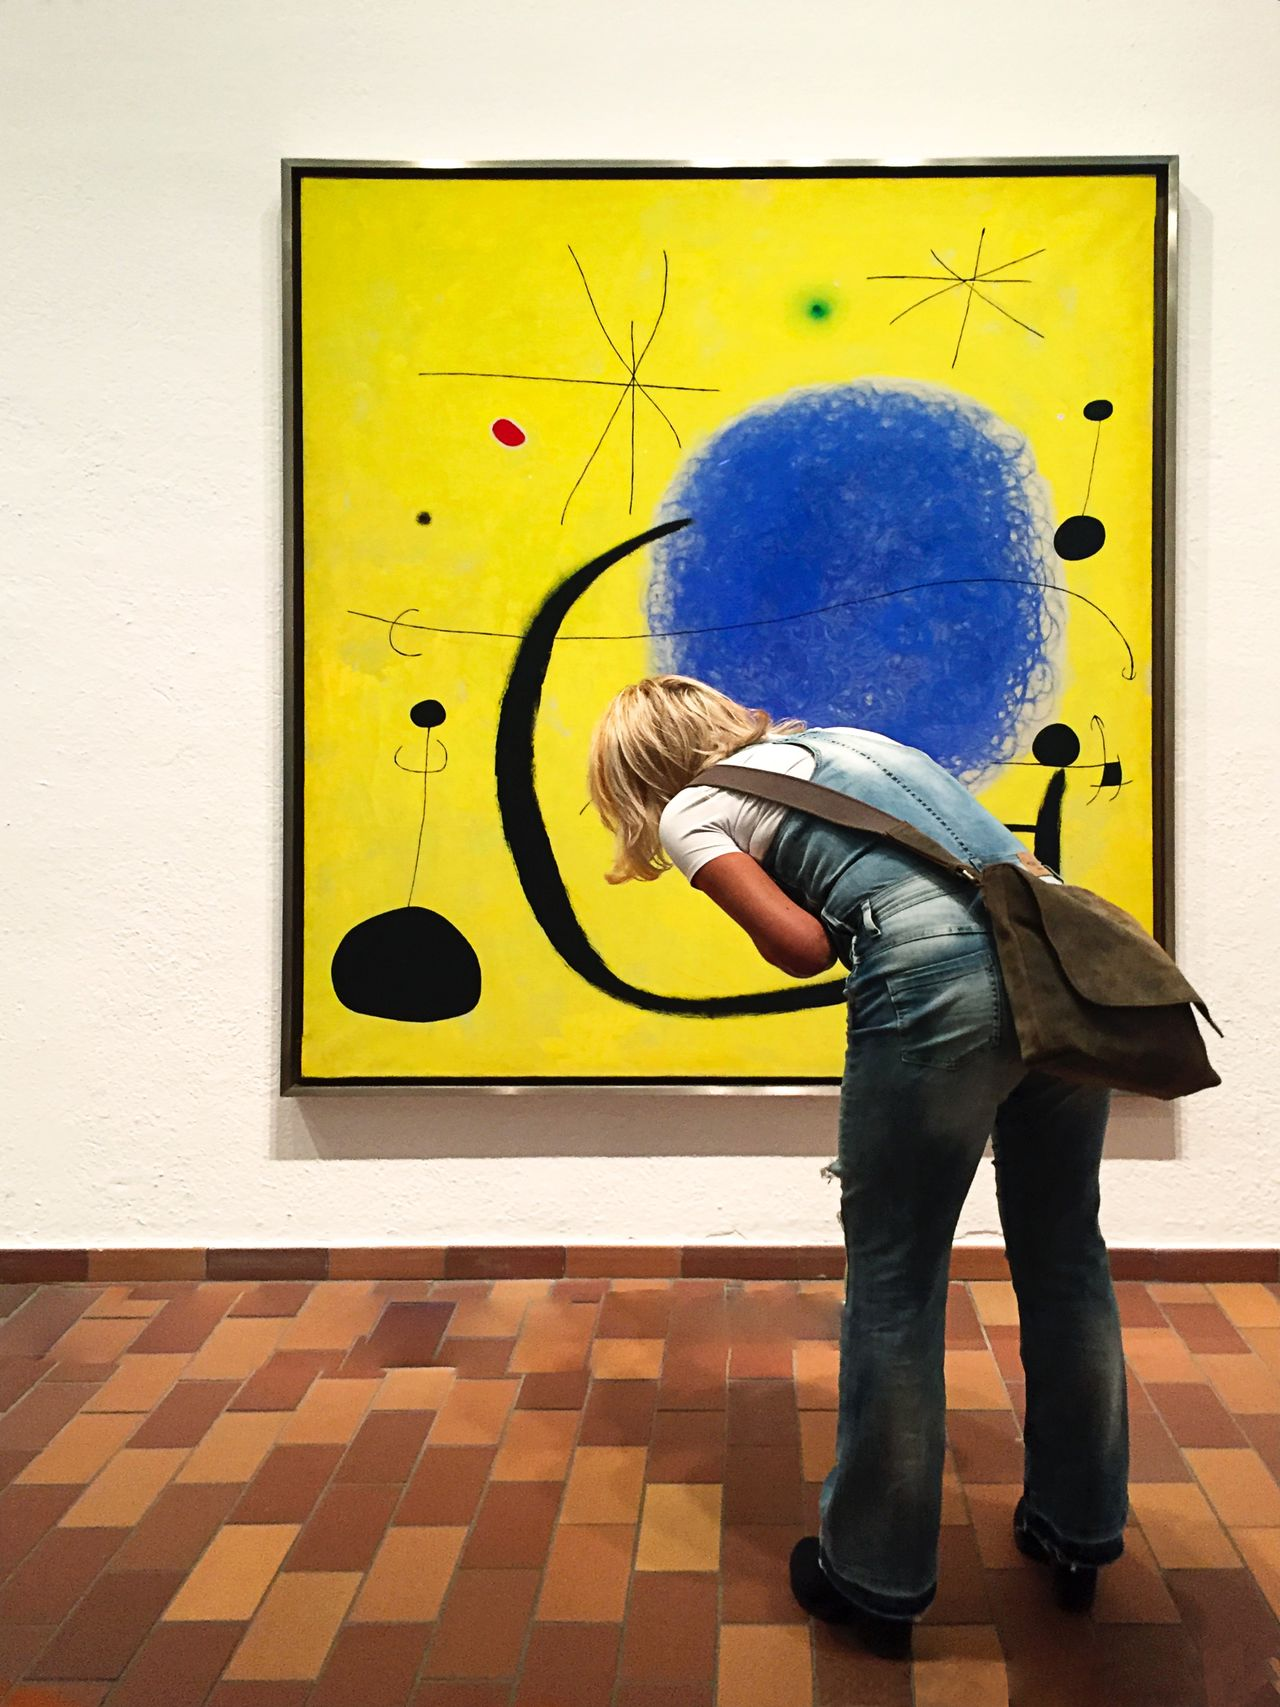 76 / 365 Artwatchers Artwatchers_united Contrasting Colors FundationLouisVoitton Indoors  Leisure Activity Miró  One Person Rear View Travel Destinations Travel Photography